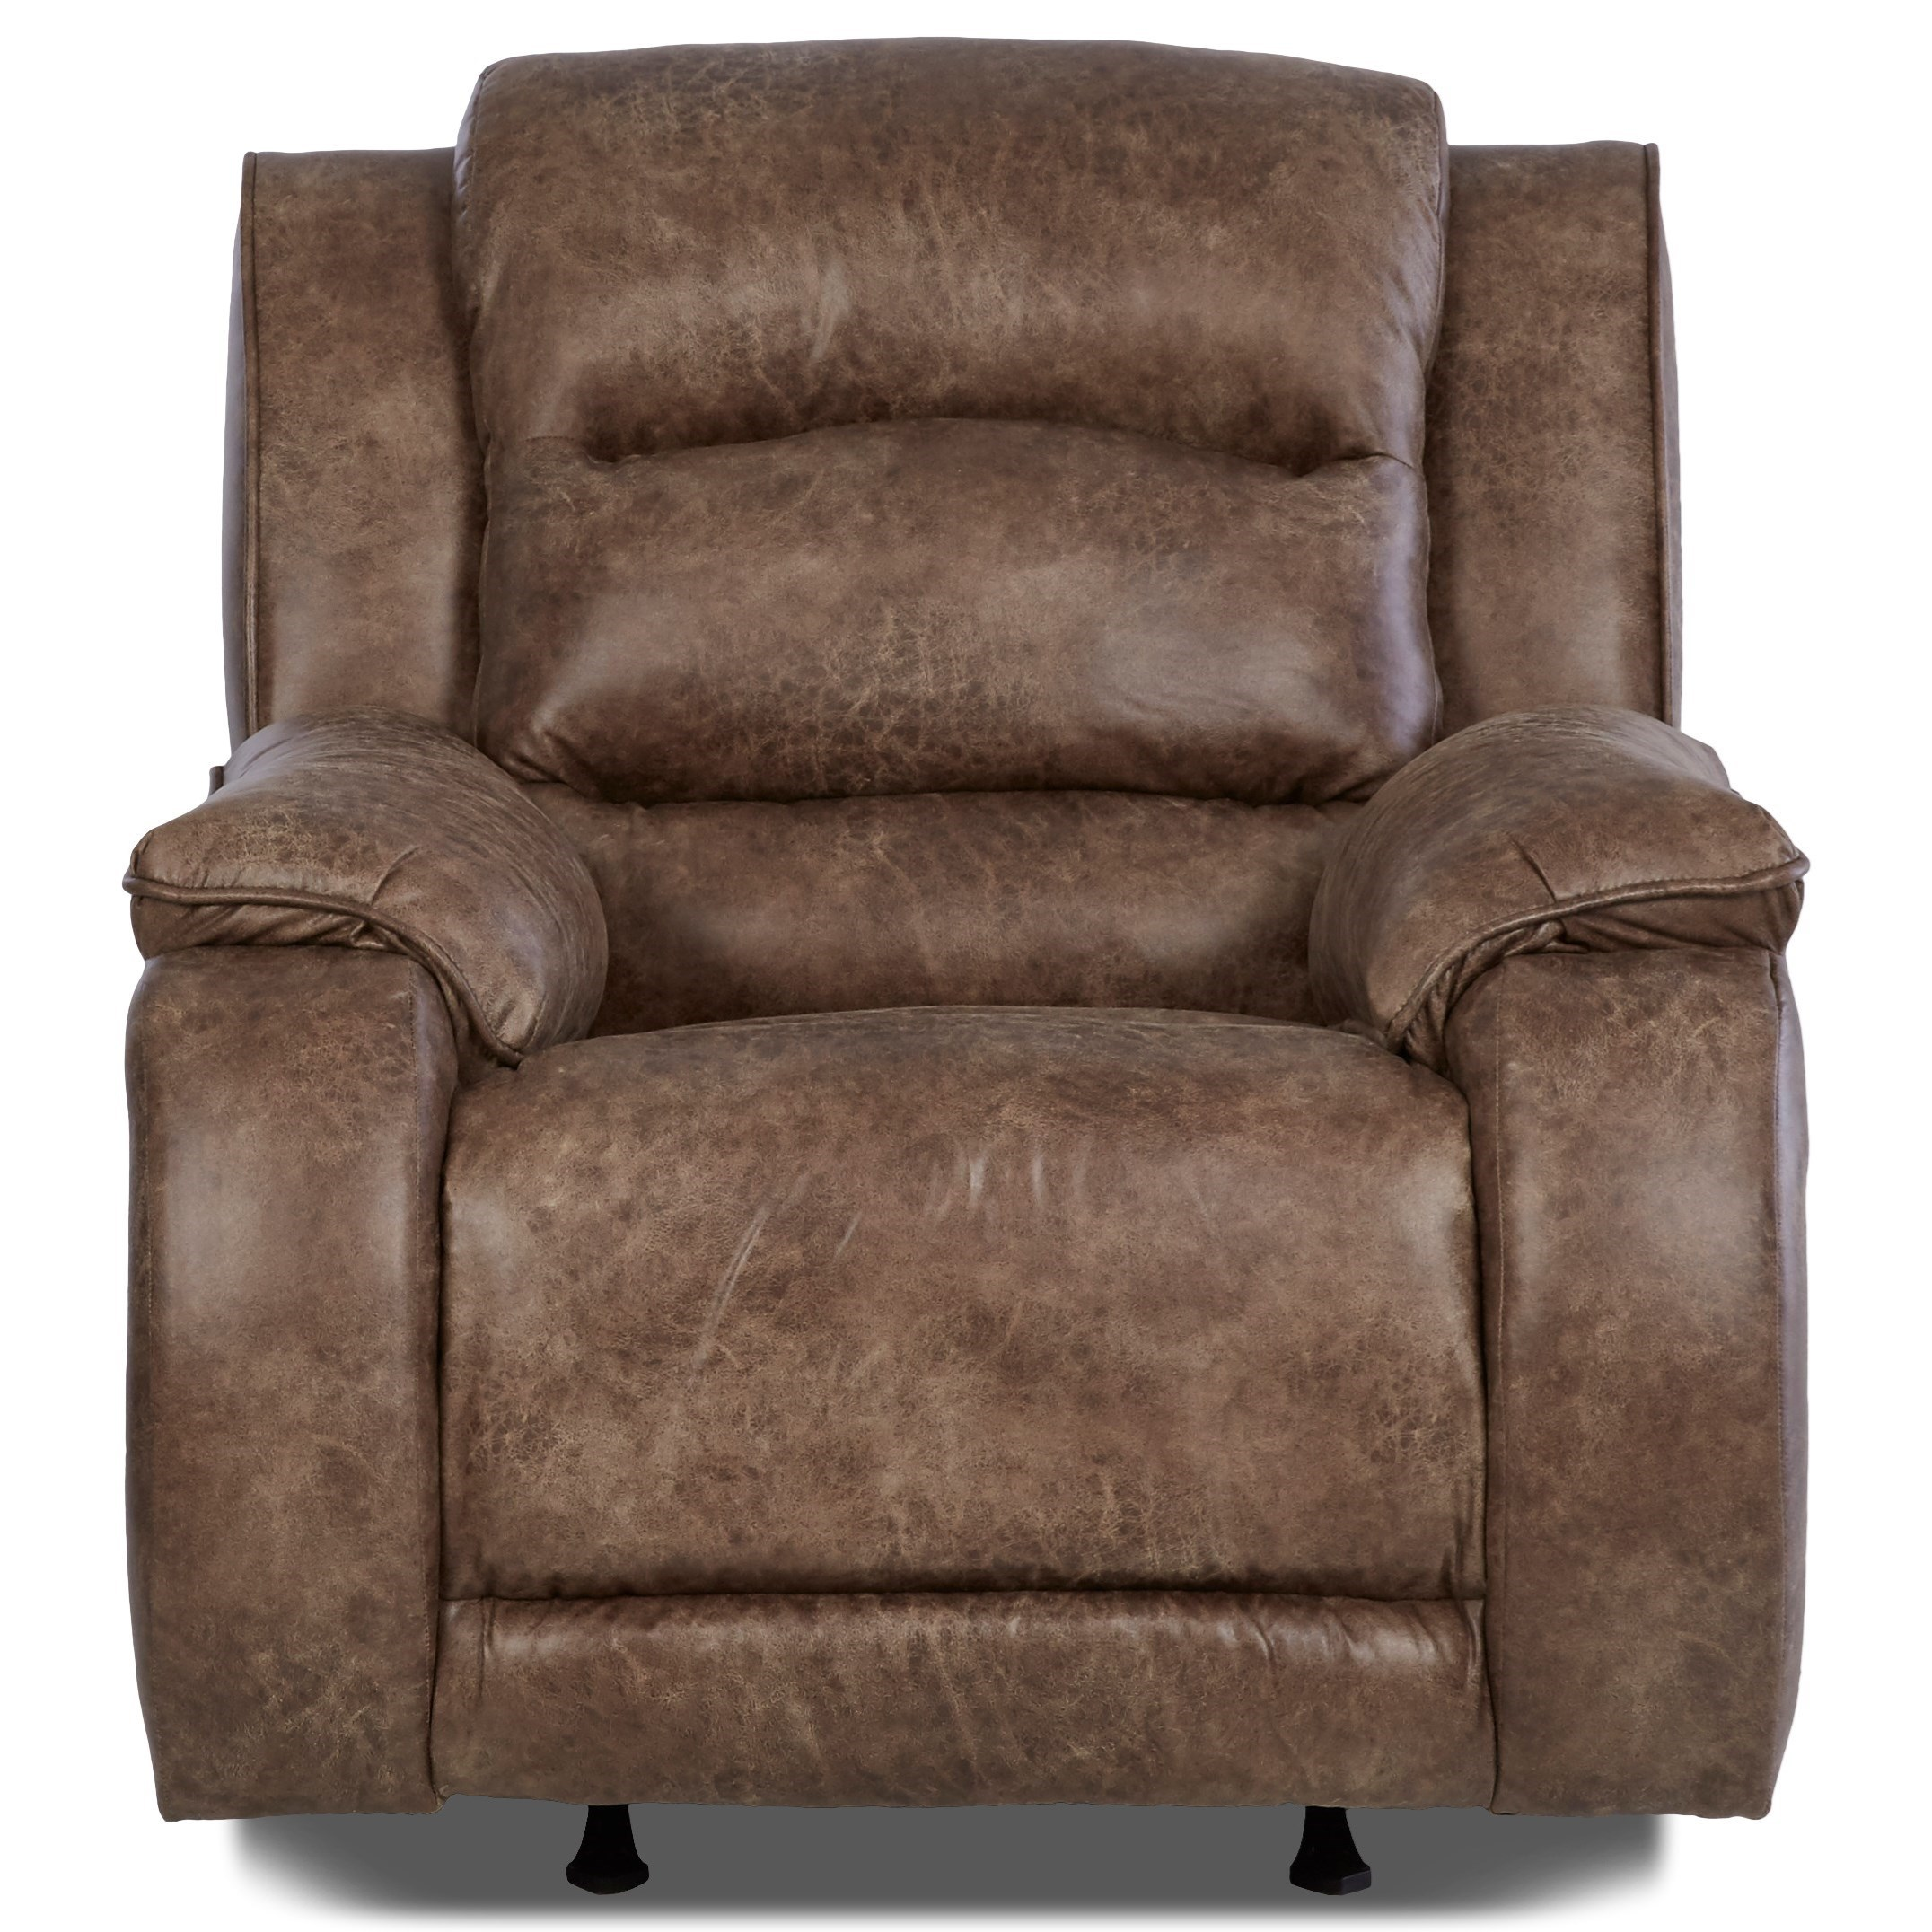 Klaussner Reuben Power Recliner With Power Headrest And